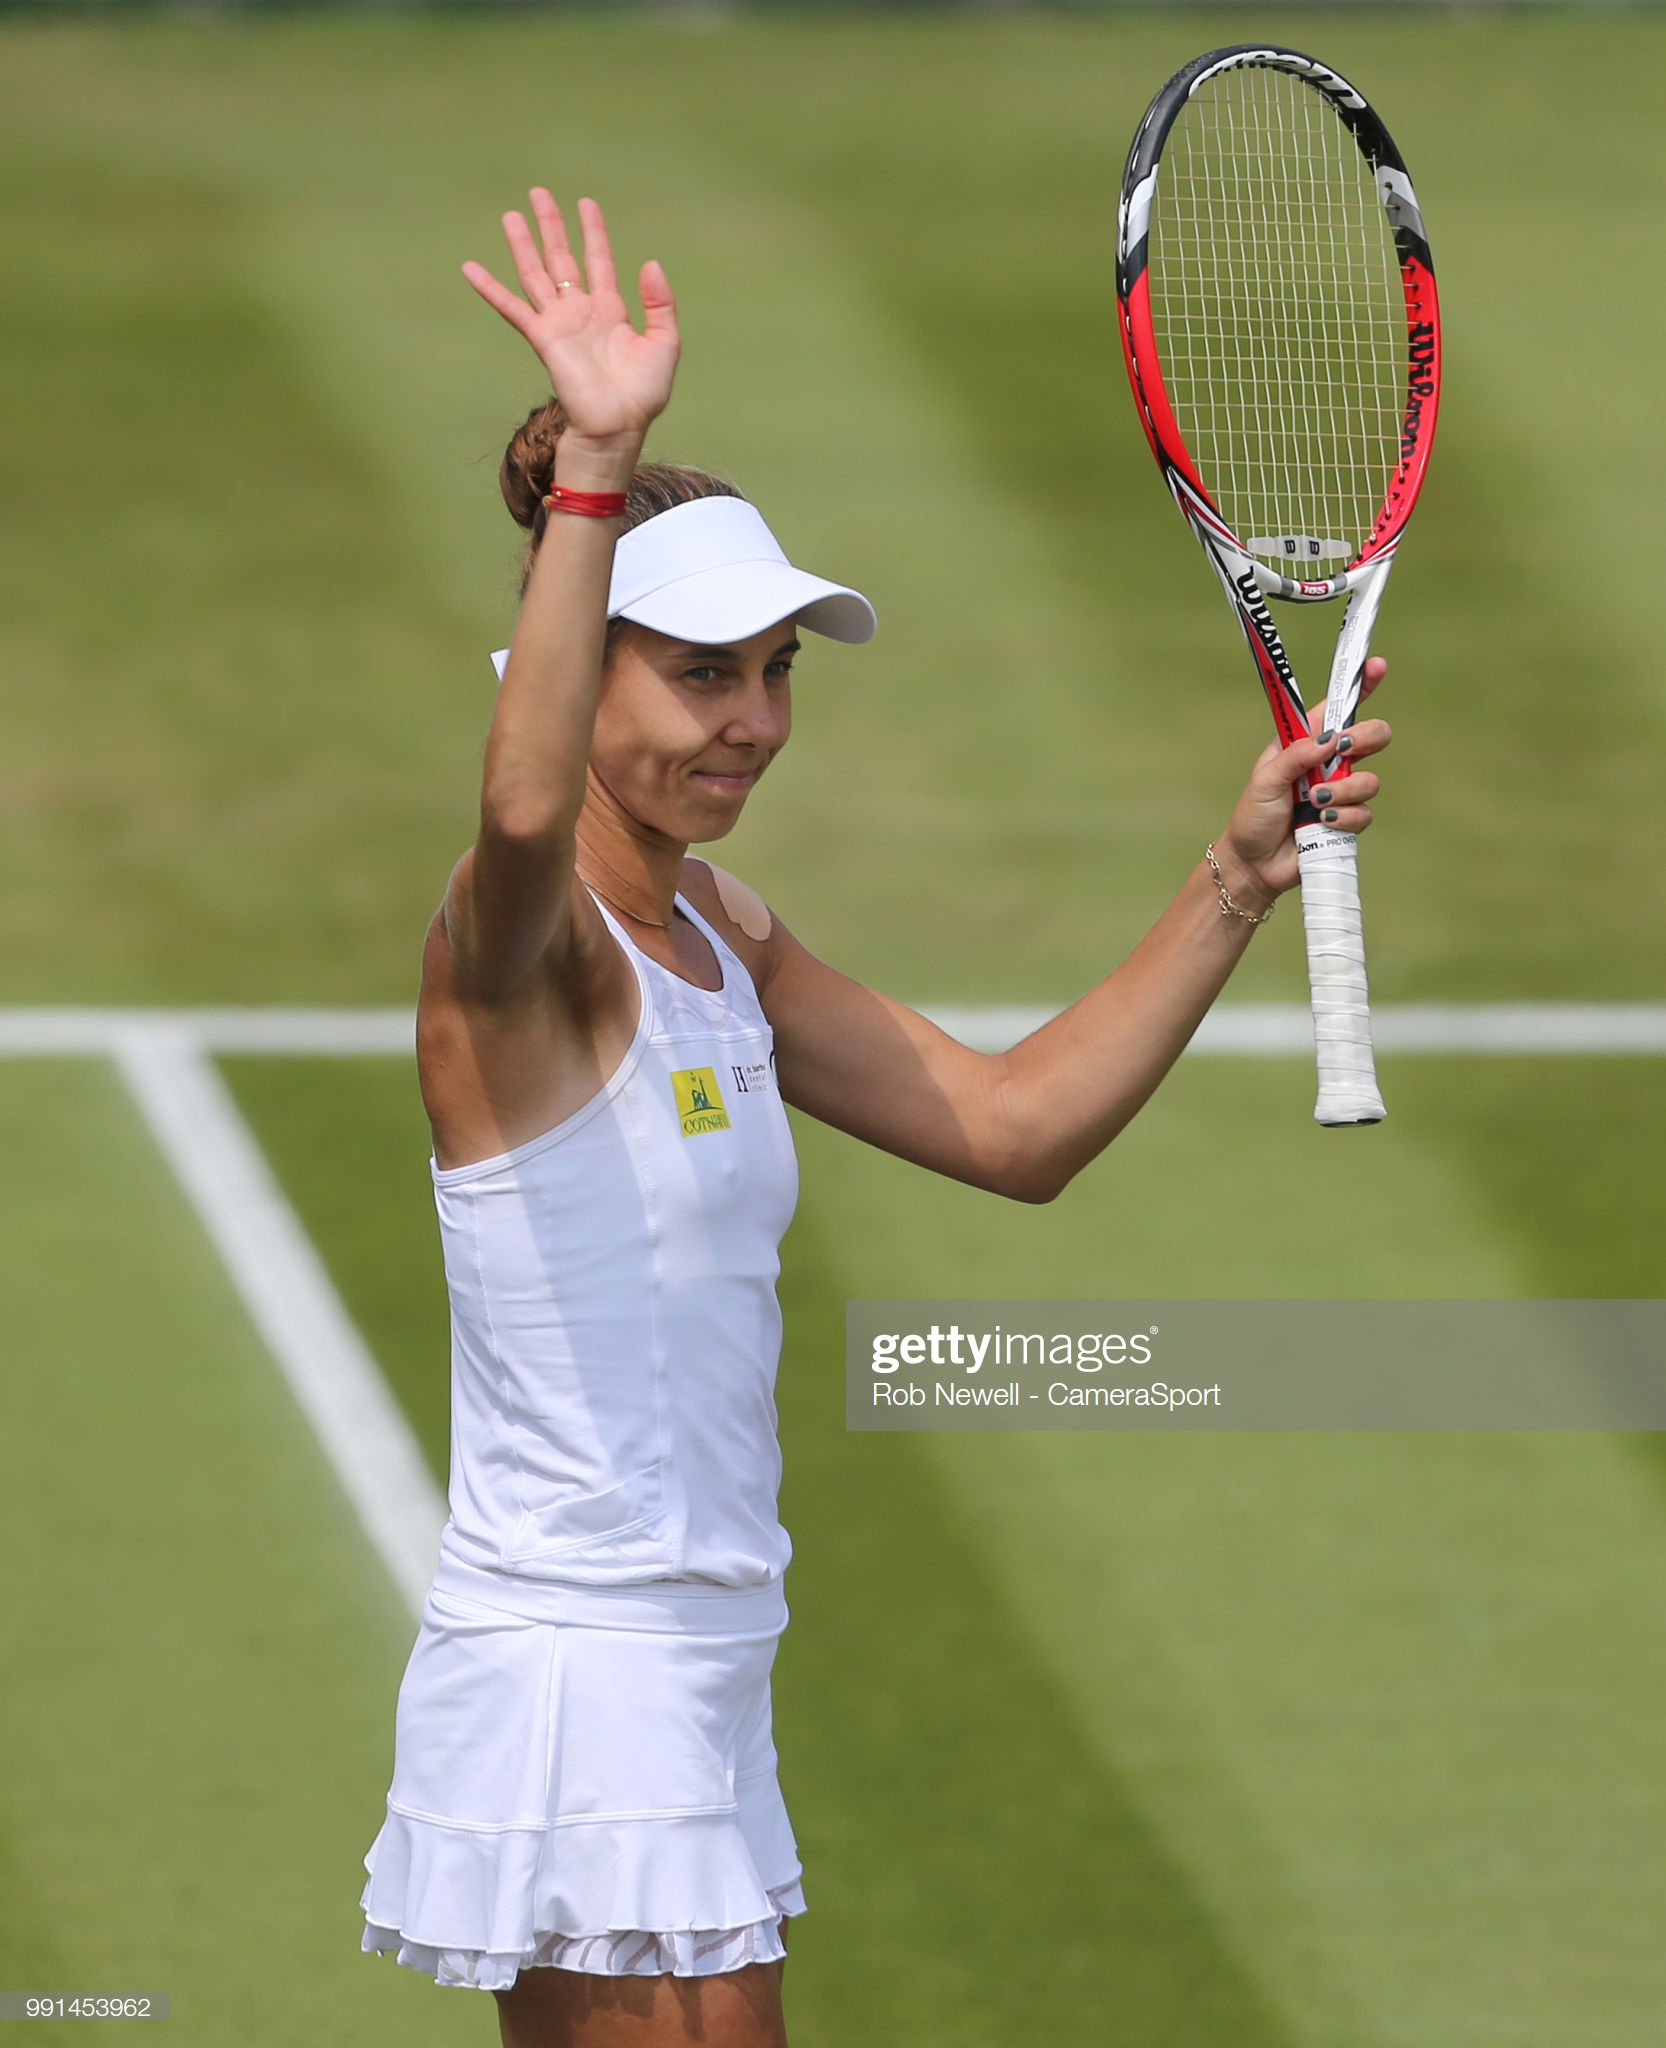 LONDON, ENGLAND - JULY 04:   Mihaela Buzarnescu (ROU) acknowledges the crowd after winning her match against Katie Swan (GBR) at All England Lawn Tennis and Croquet Club on July 4, 2018 in London, England. (Photo by Rob Newell - CameraSport via Getty Images)